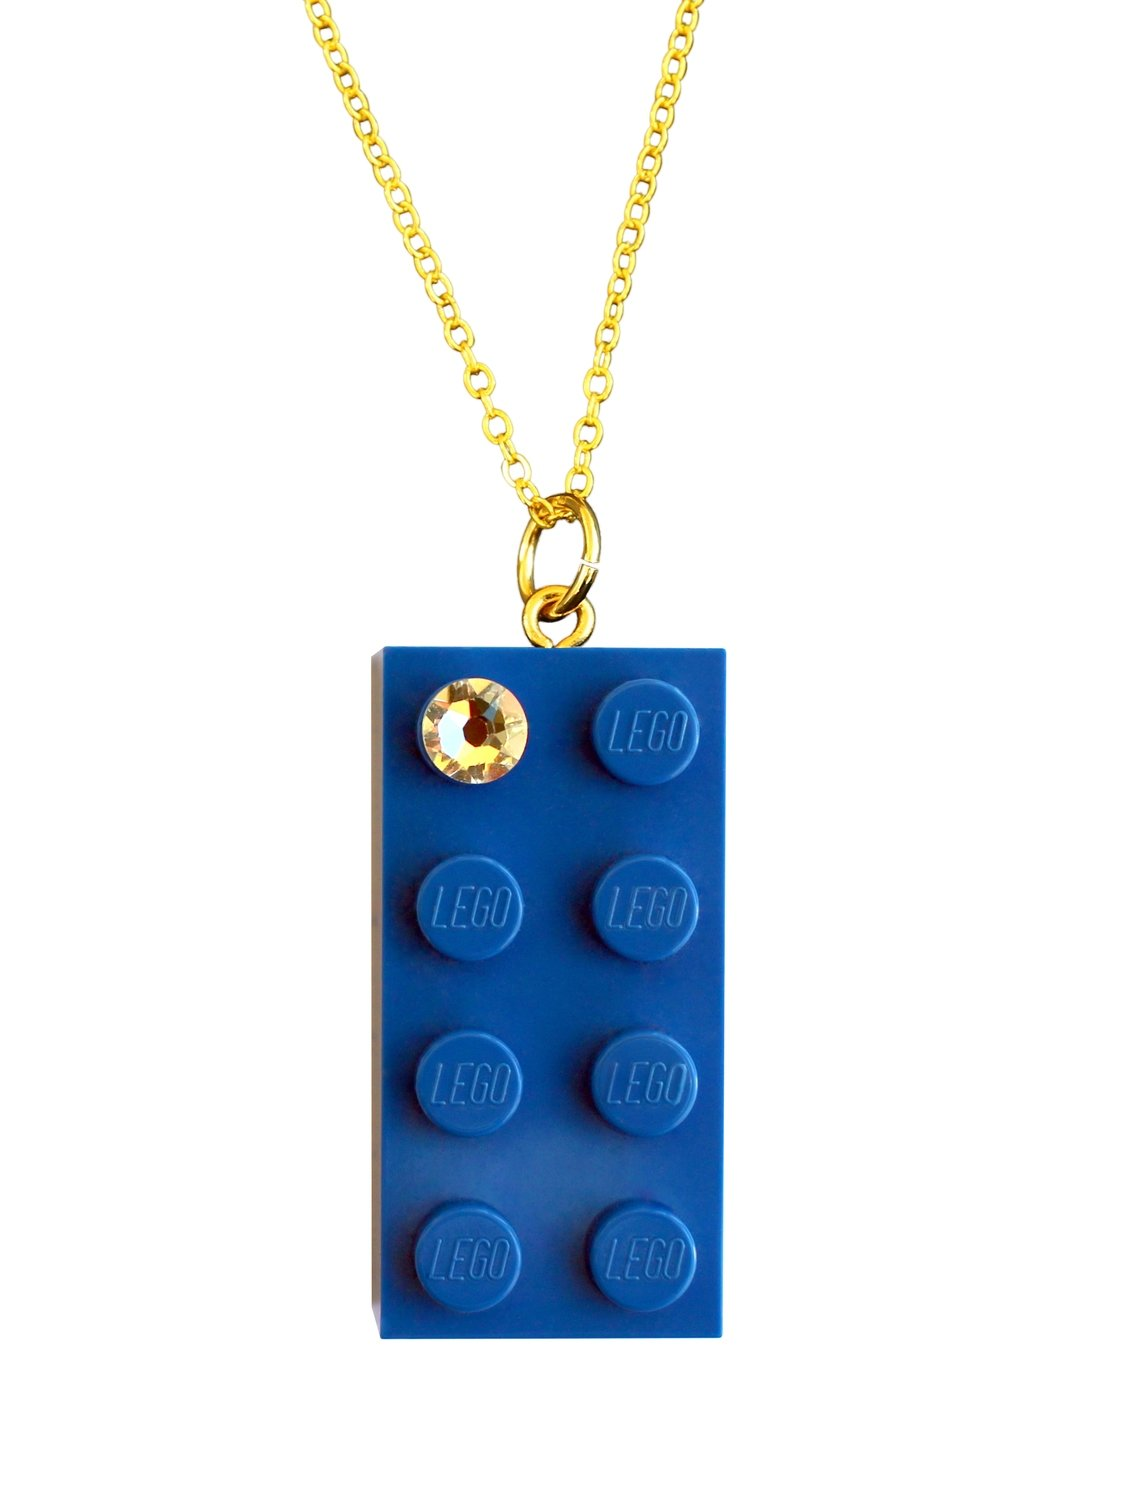 "Dark Blue LEGO® brick 2x4 with a 'Diamond' color ​ SWAROVSKI® crystal on a Gold plated trace chain (18"" or 24"")"